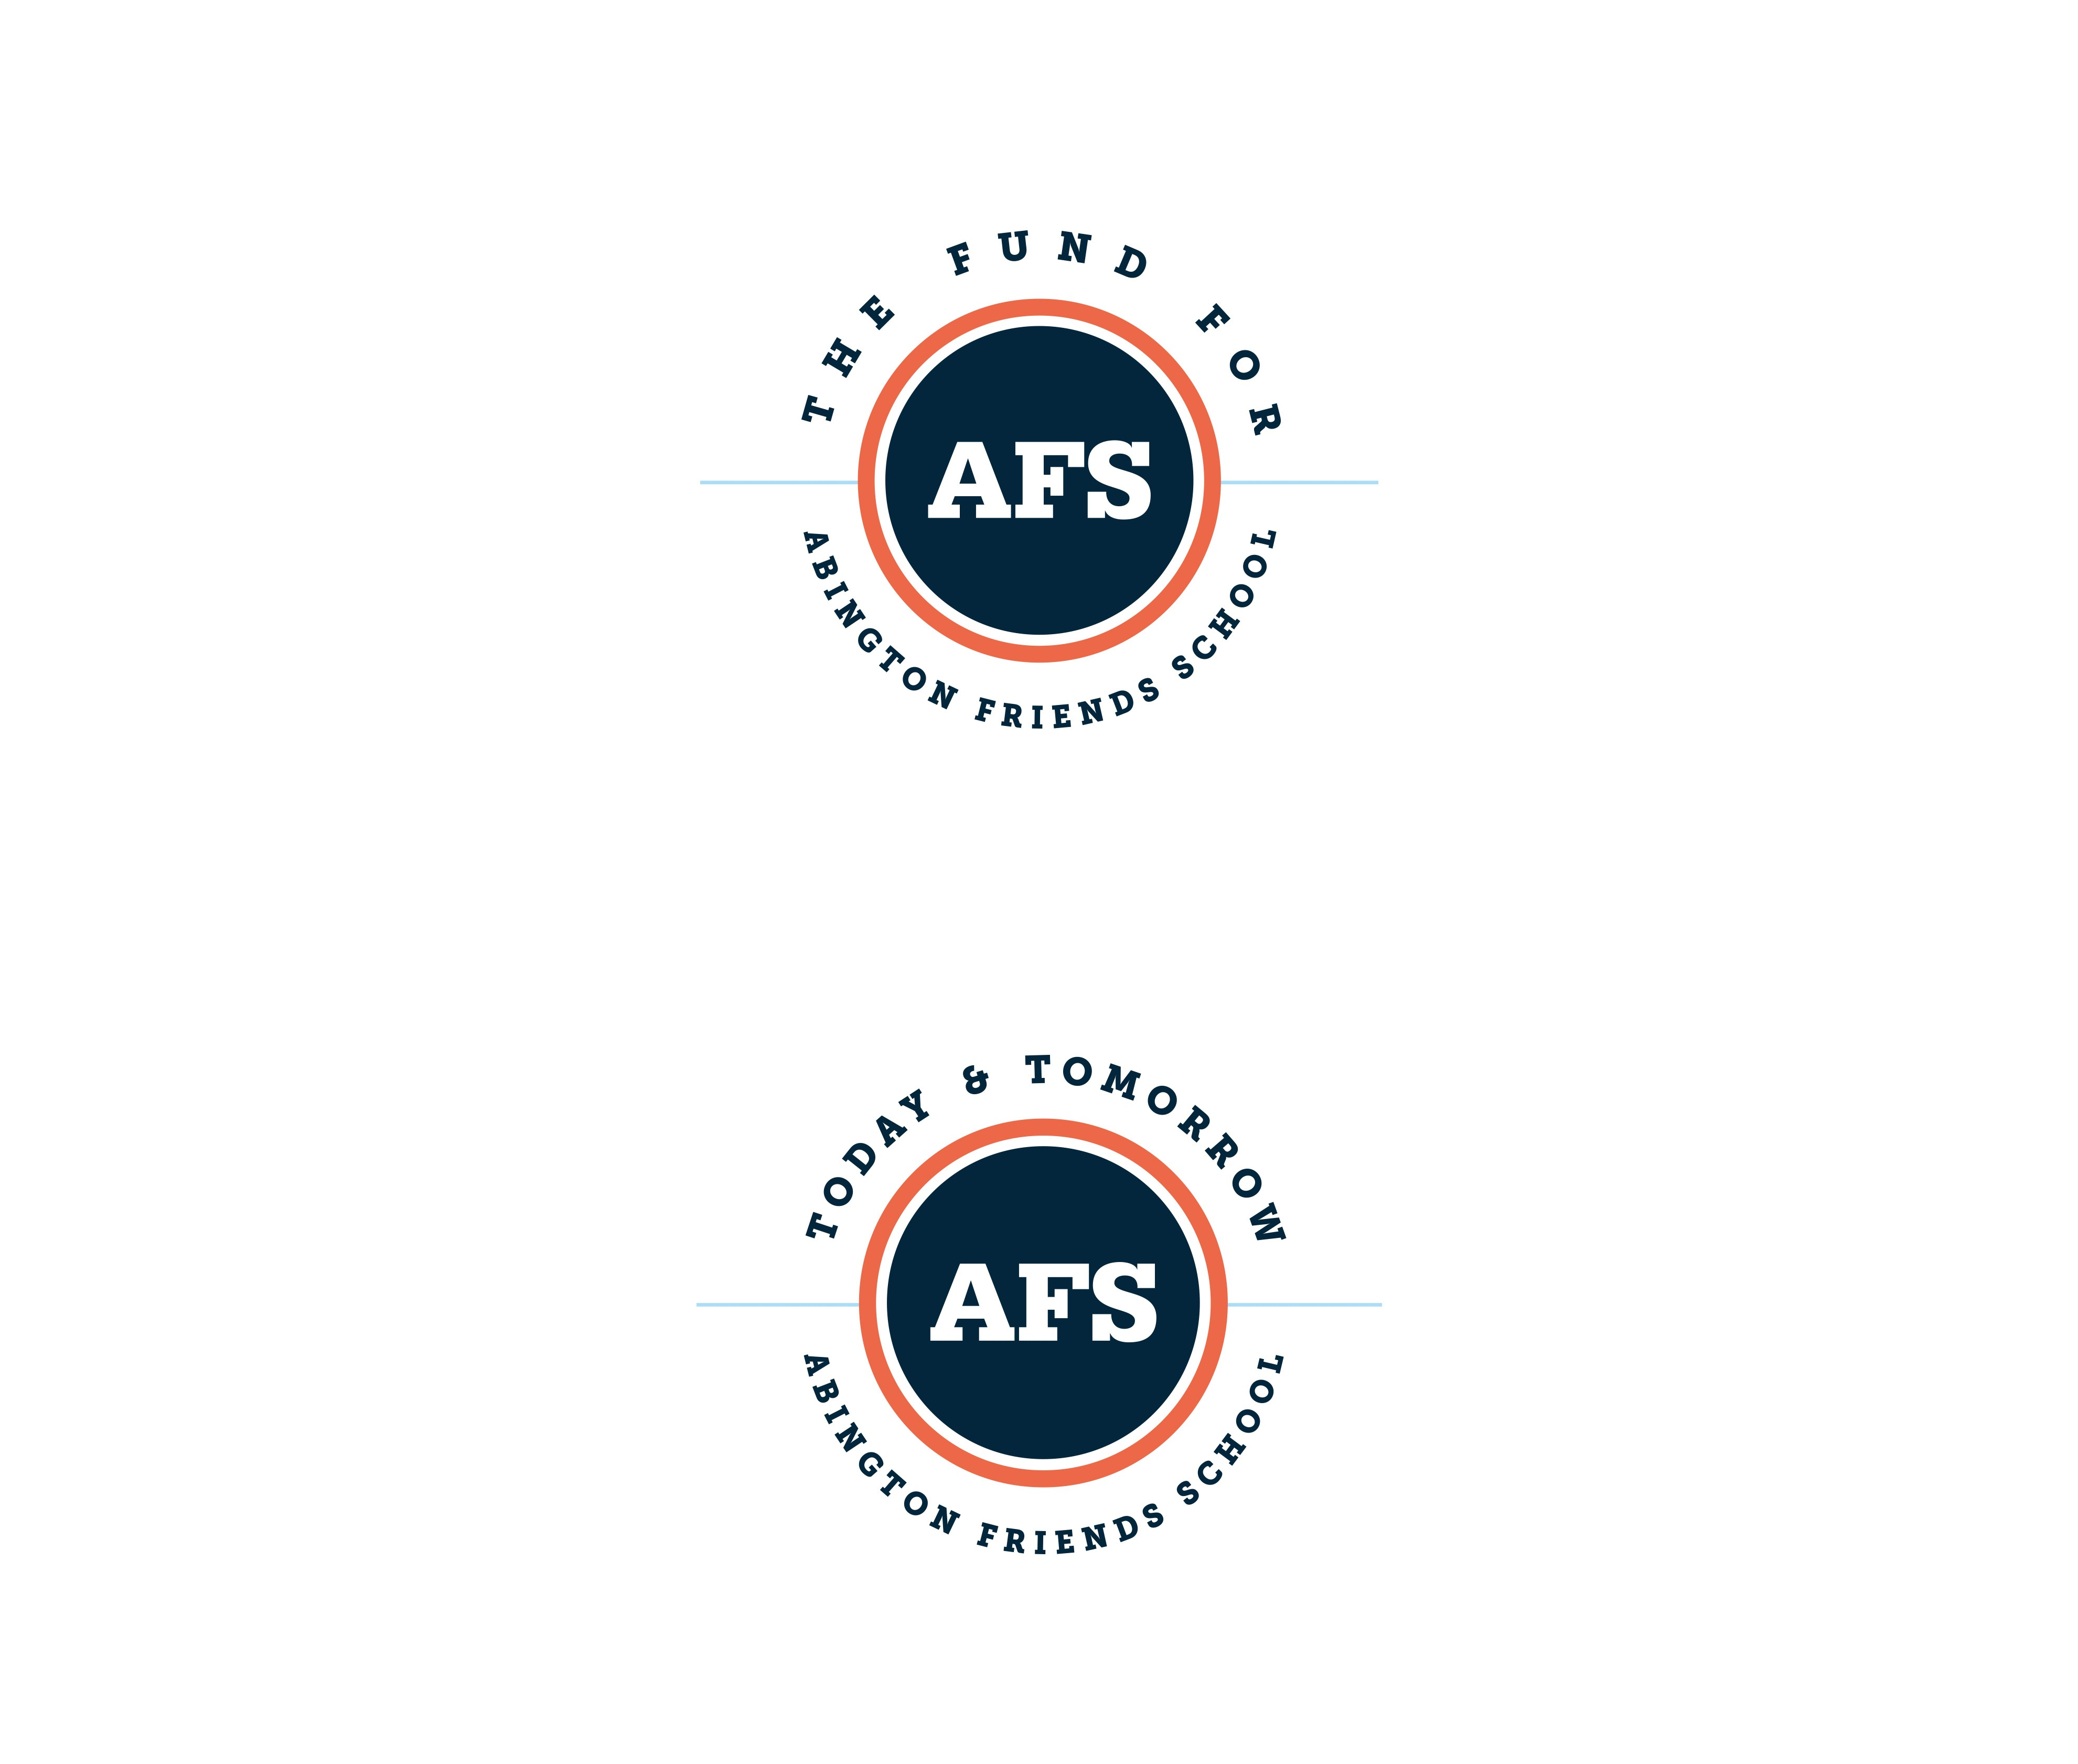 The Fund For AFS Logos